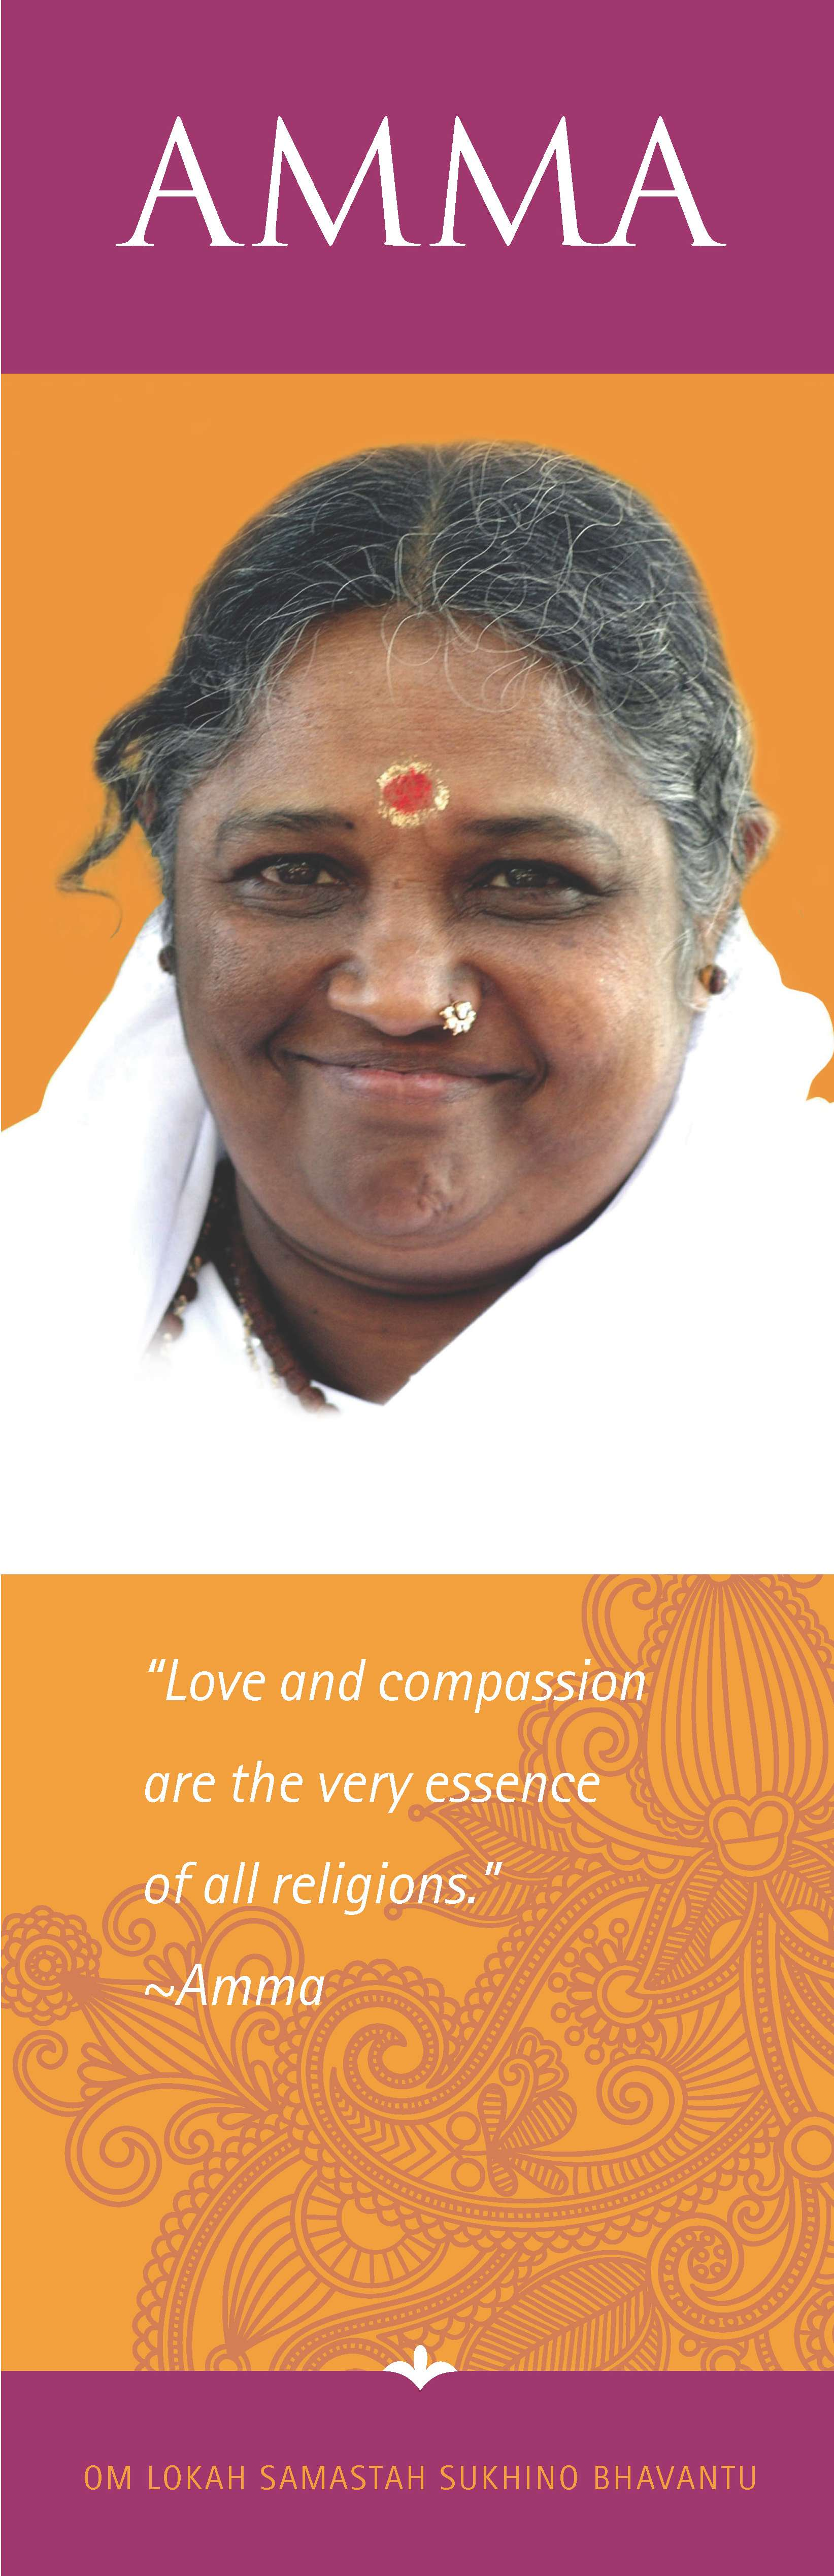 Amma's Boston Program 2013